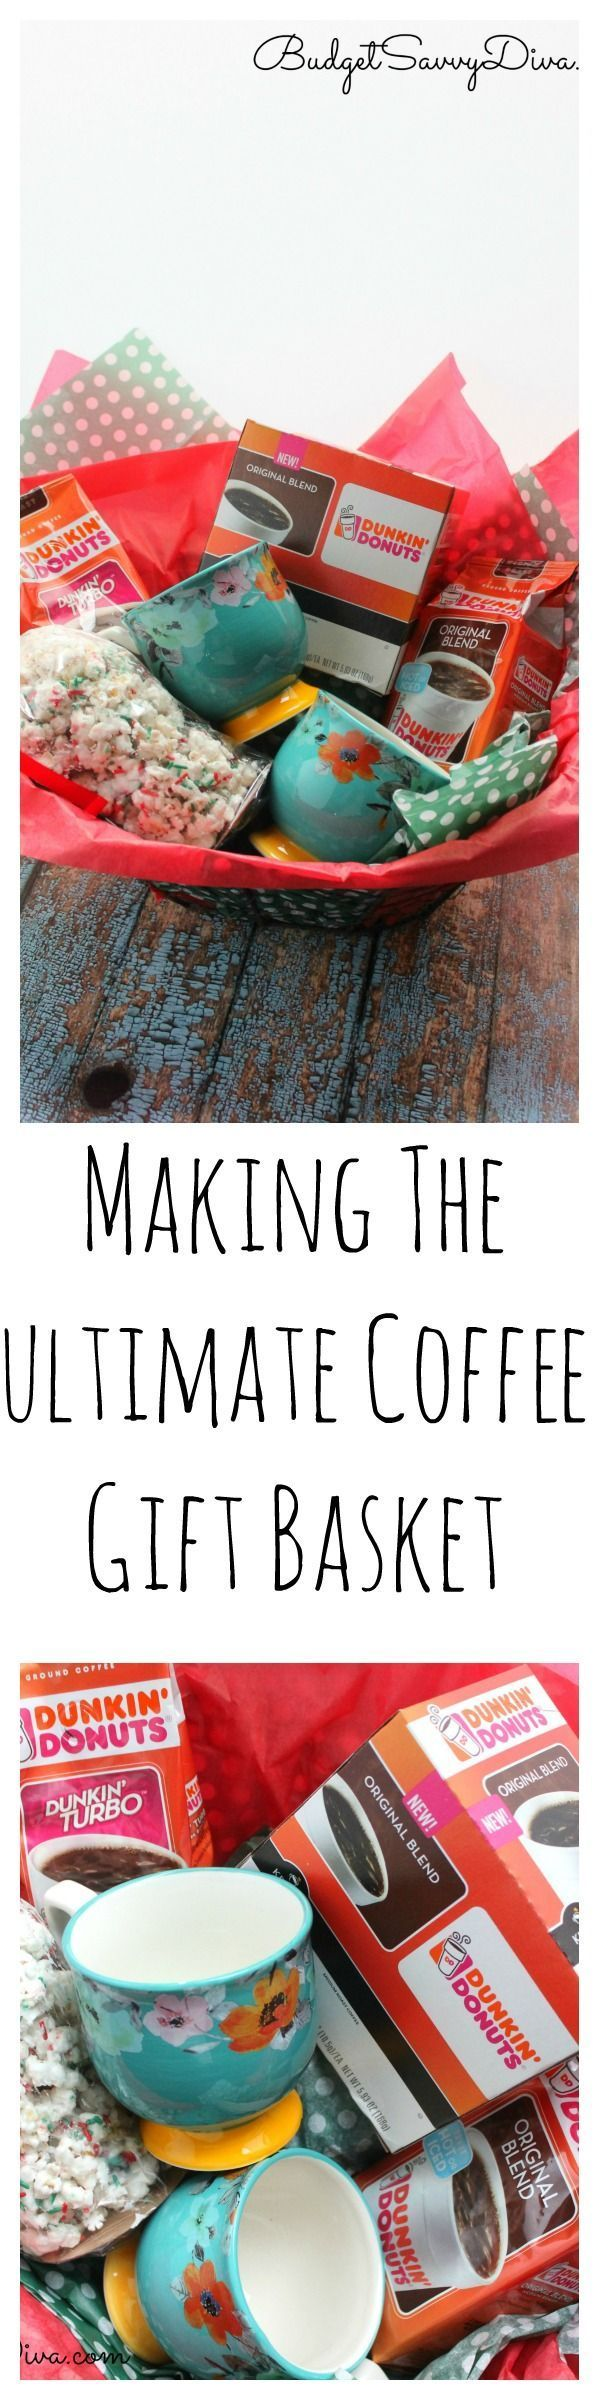 My husband loves coffee. I mean LOVES Dunkin' Donuts®️ Coffee – he seriously does not function till his 2 cups of coffee. We were trying to come up with an idea